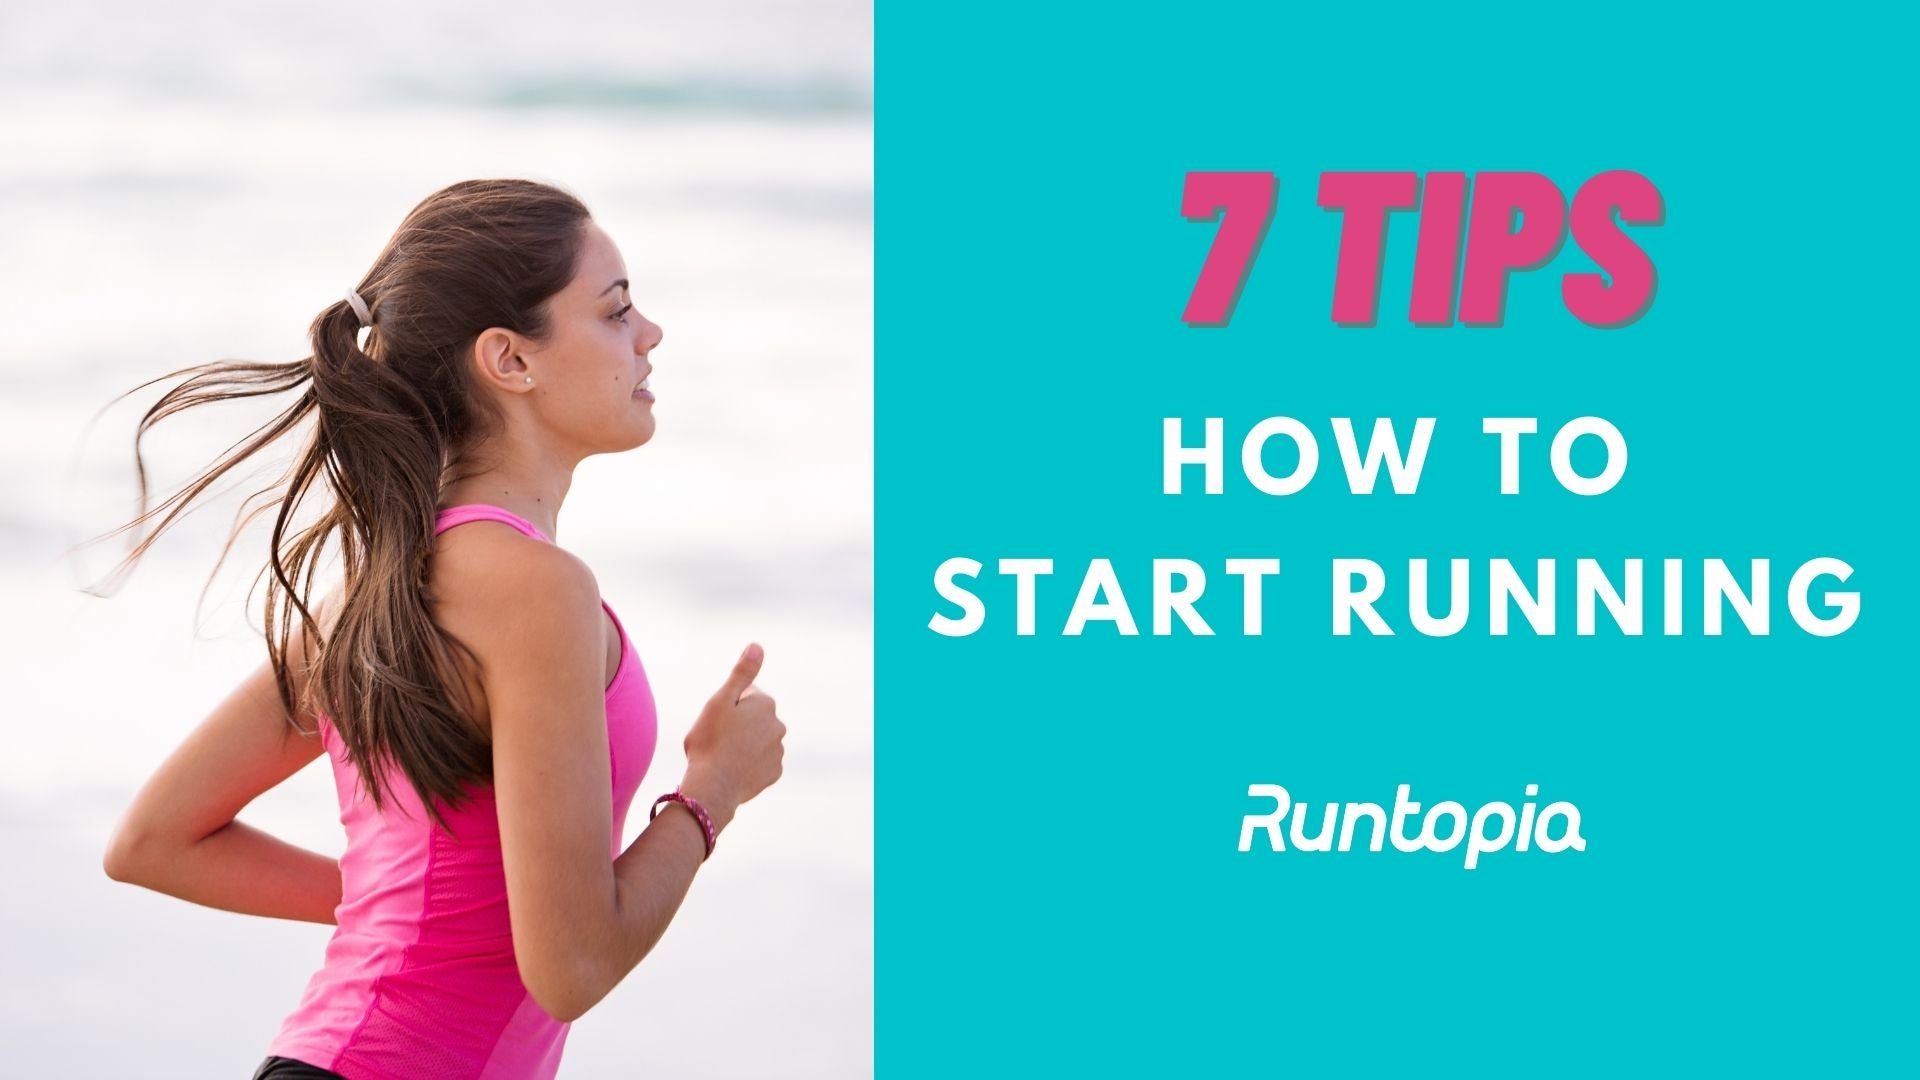 7 tips how to start running after a long break runtopia blog banner